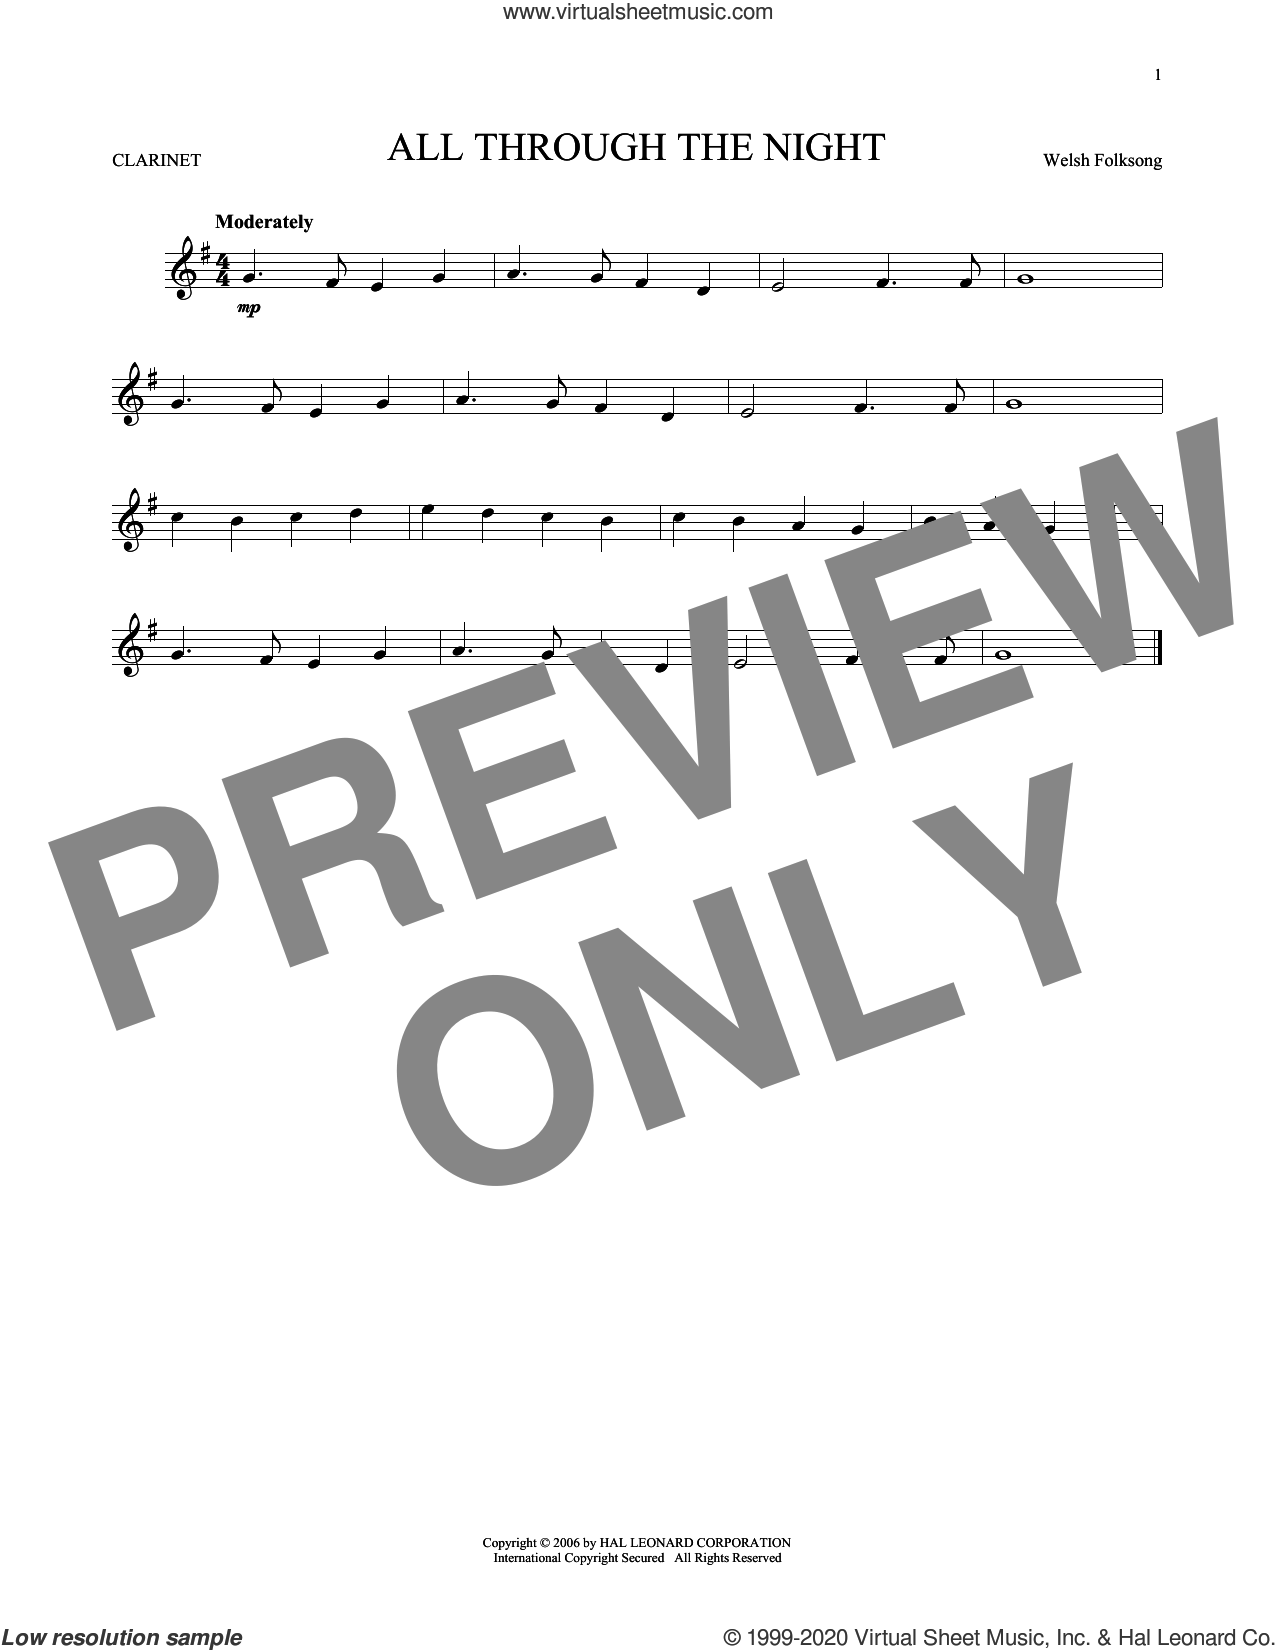 All Through The Night sheet music for clarinet solo, intermediate skill level